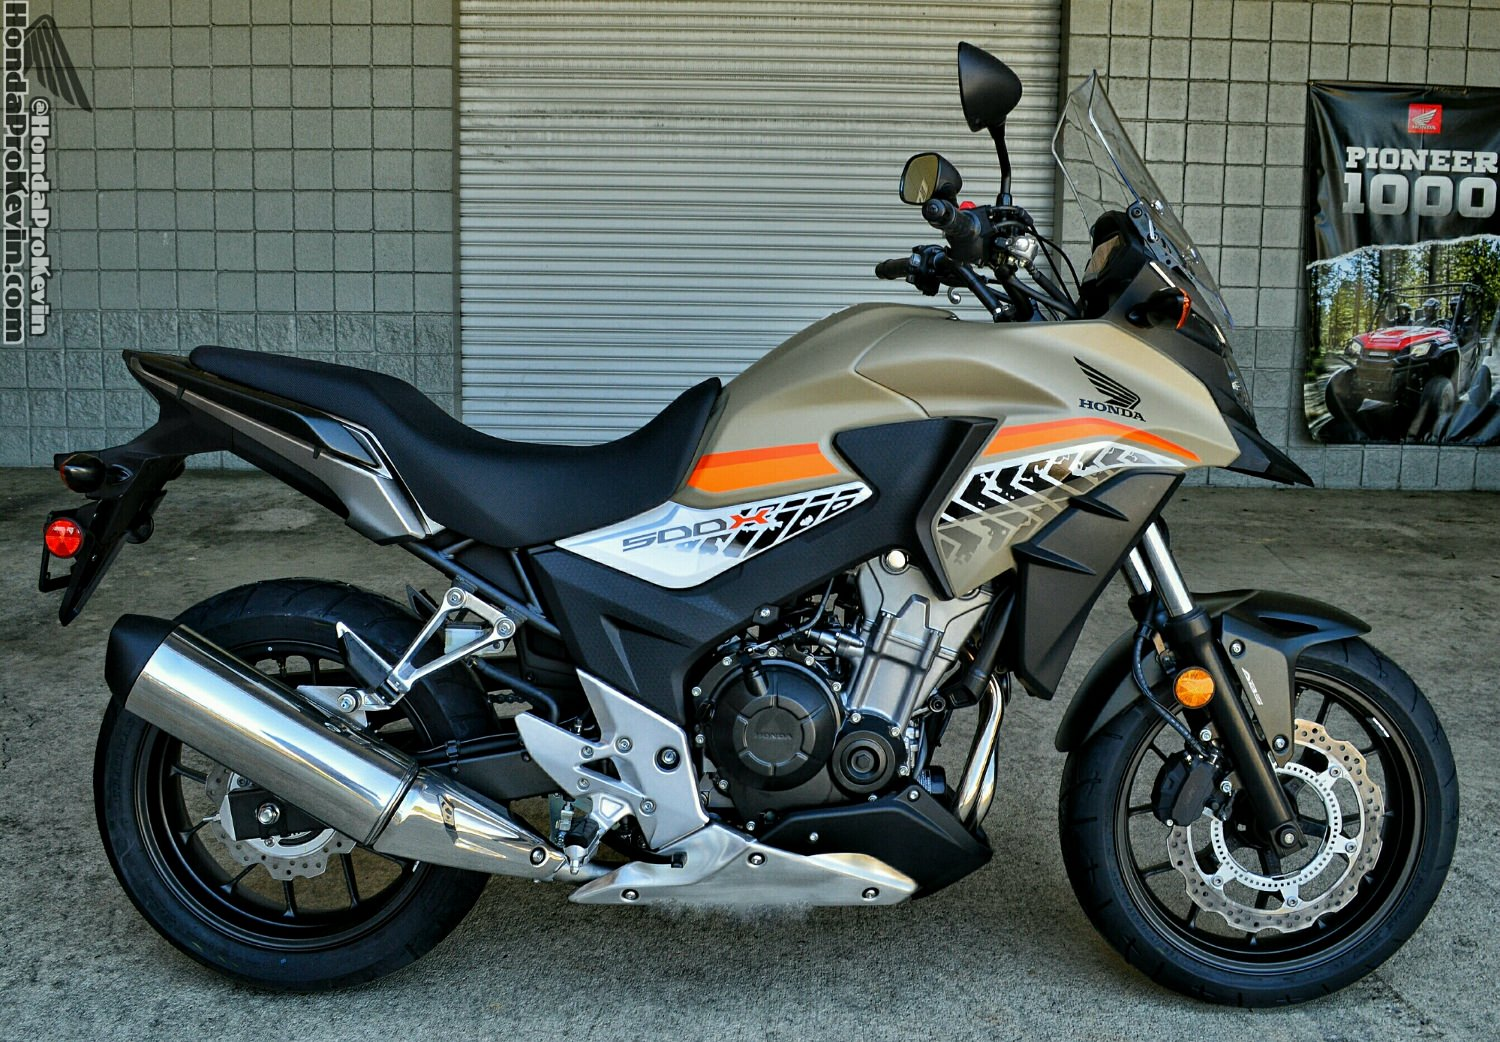 2016 Honda CB500X ABS Review / Specs - Adventure Bike / Motorcycle - CB 500X / CB500F / CBR500R